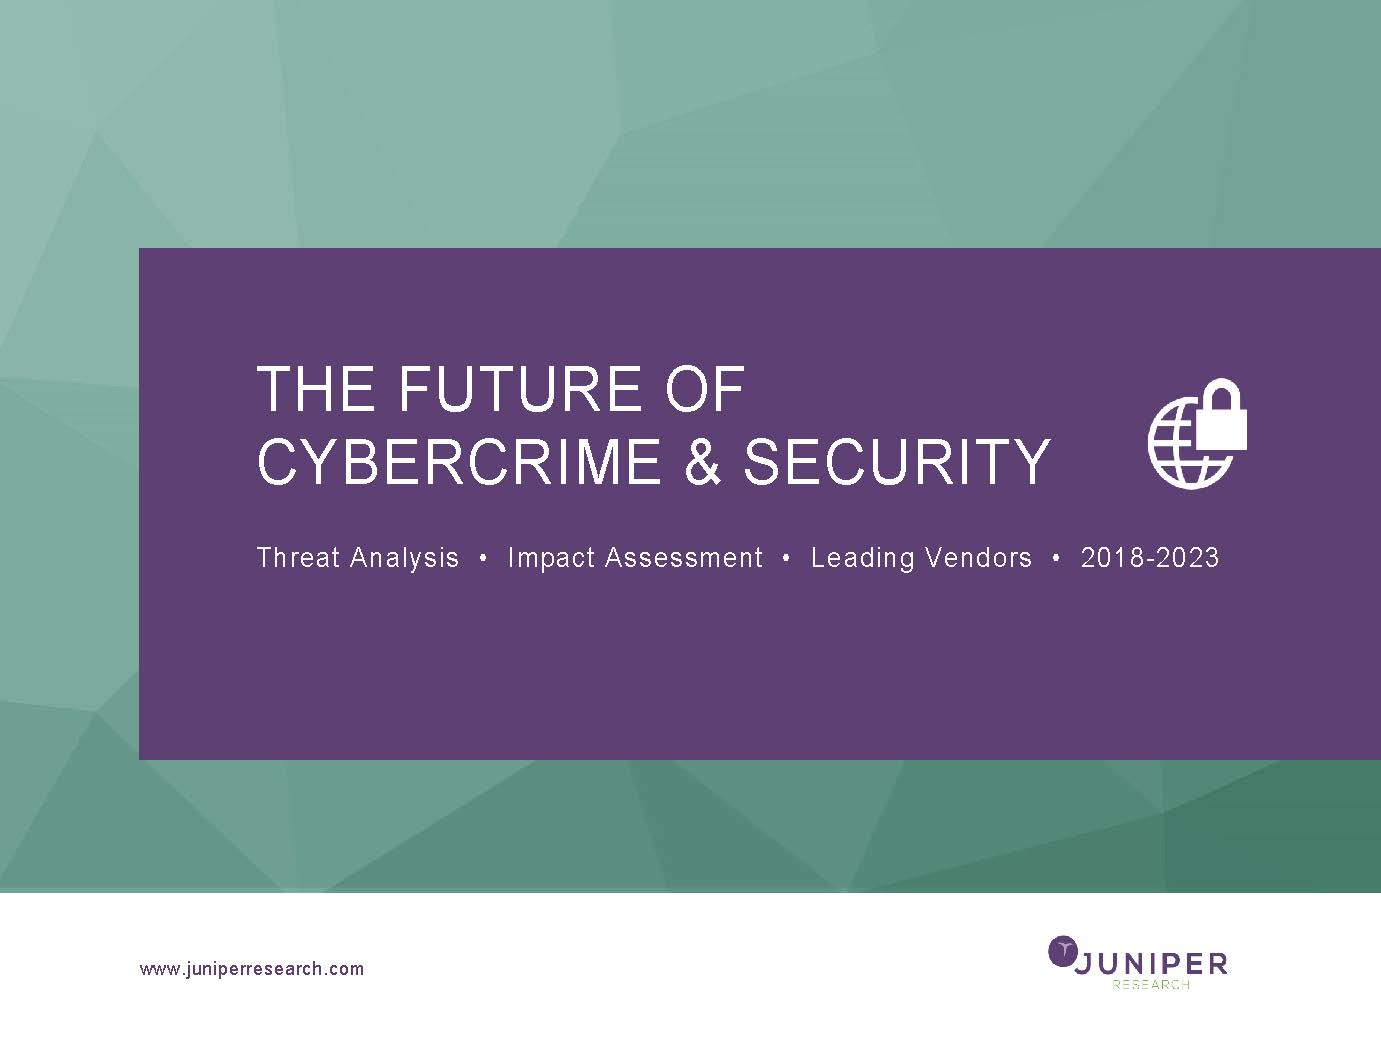 The Future of Cybercrime & Security: Threat Analysis, Impact Assessment & Leading Vendors 2018-2023 Full Research Suite